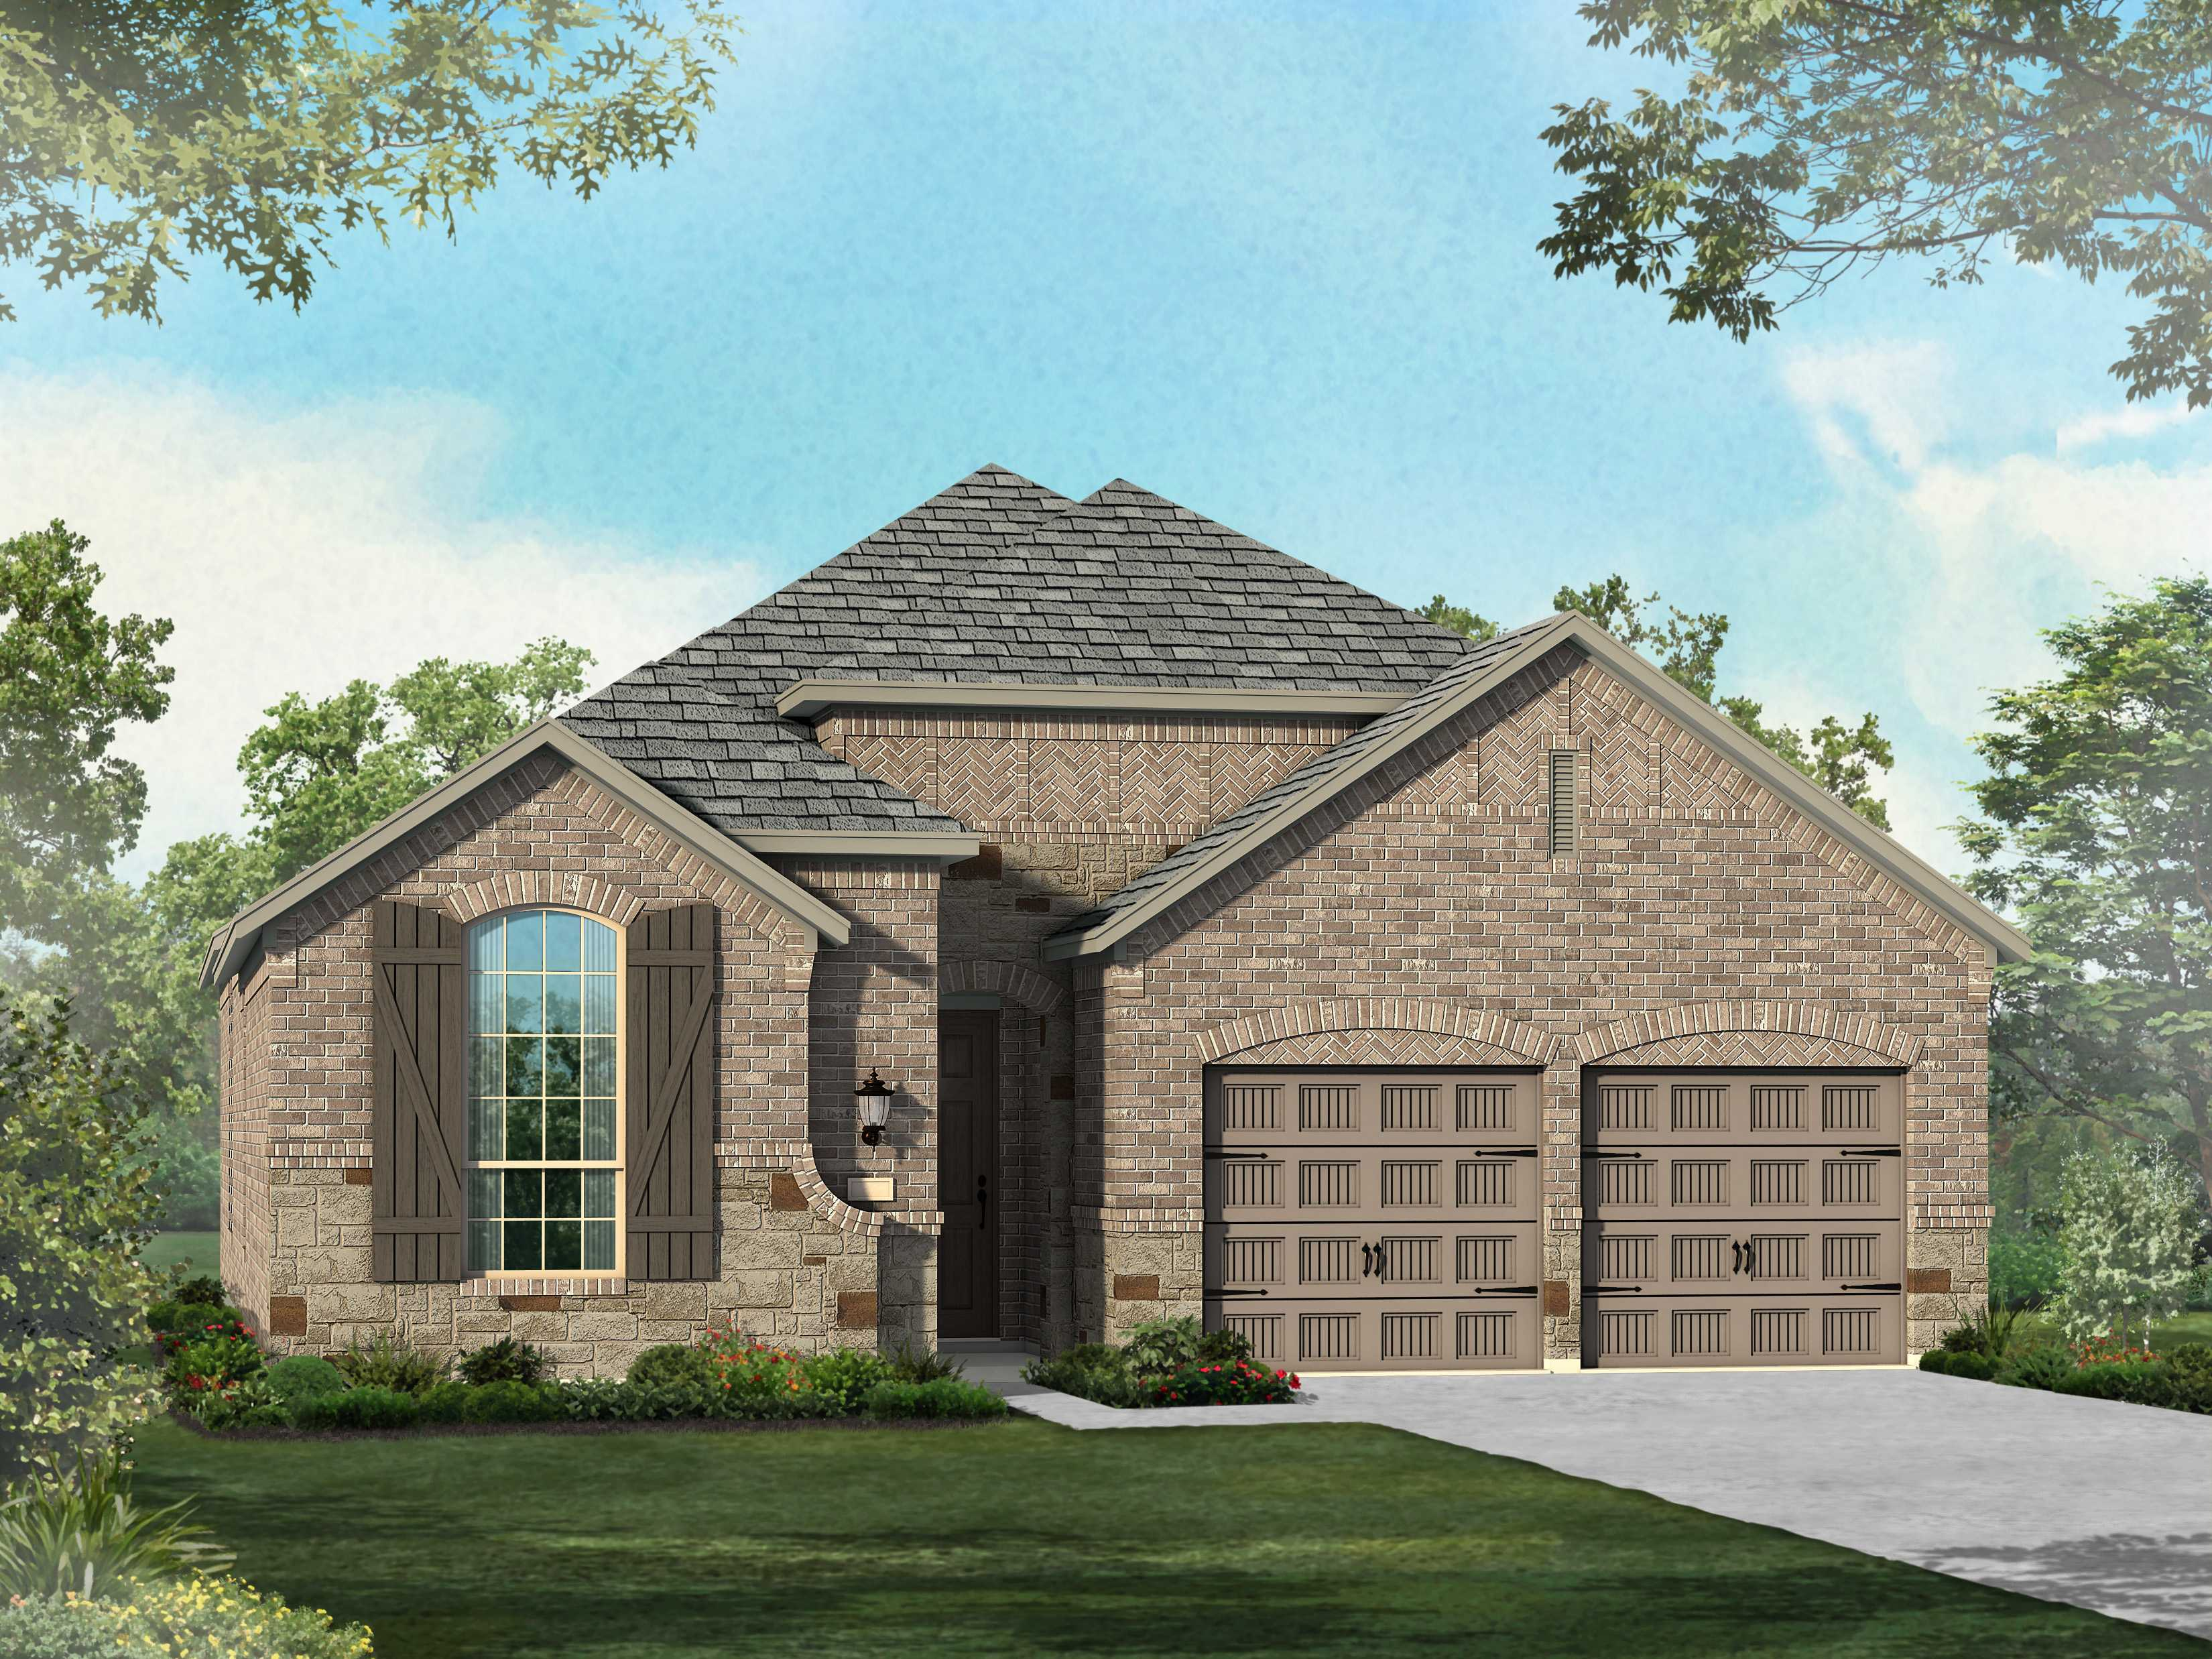 New Home Plan 551 In Boerne, TX 78006